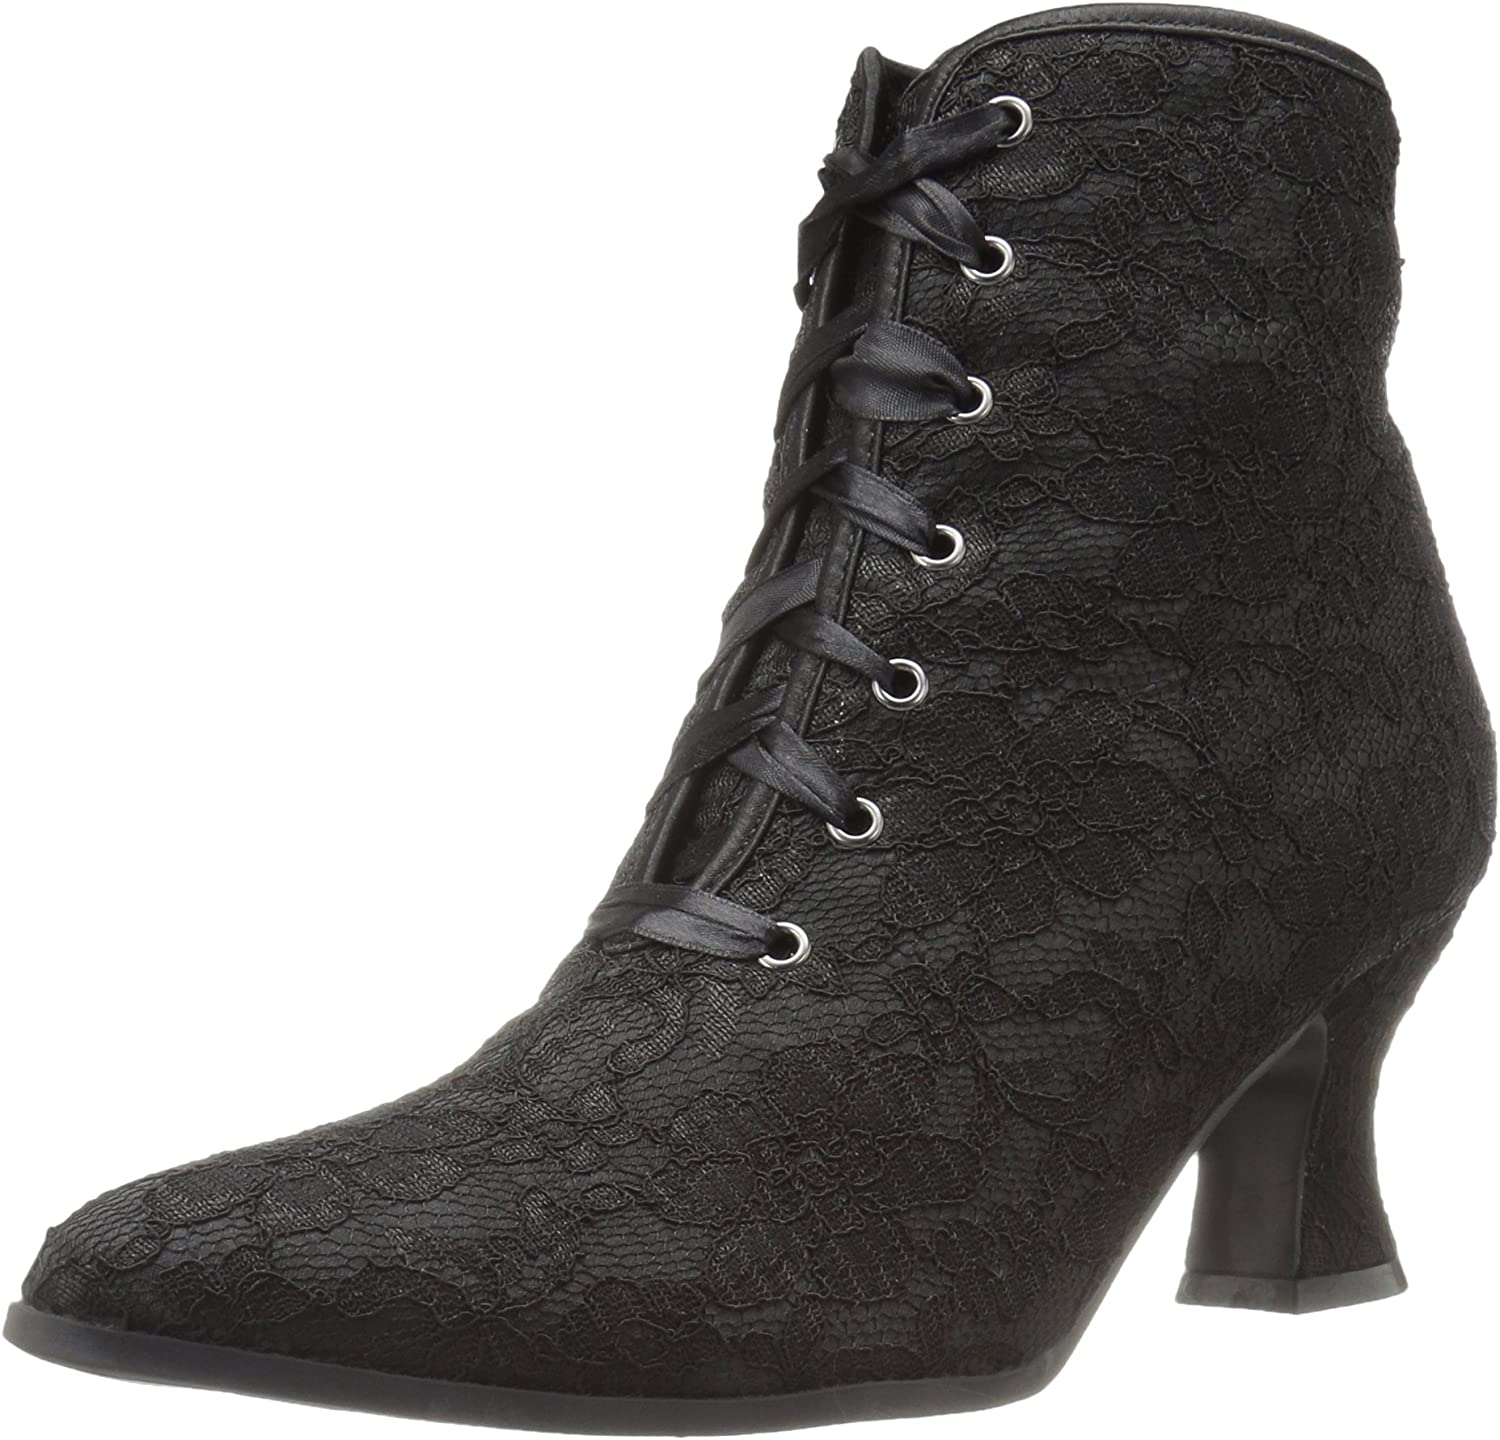 Ellie shoes Womens 253-elizabeth Ankle Bootie